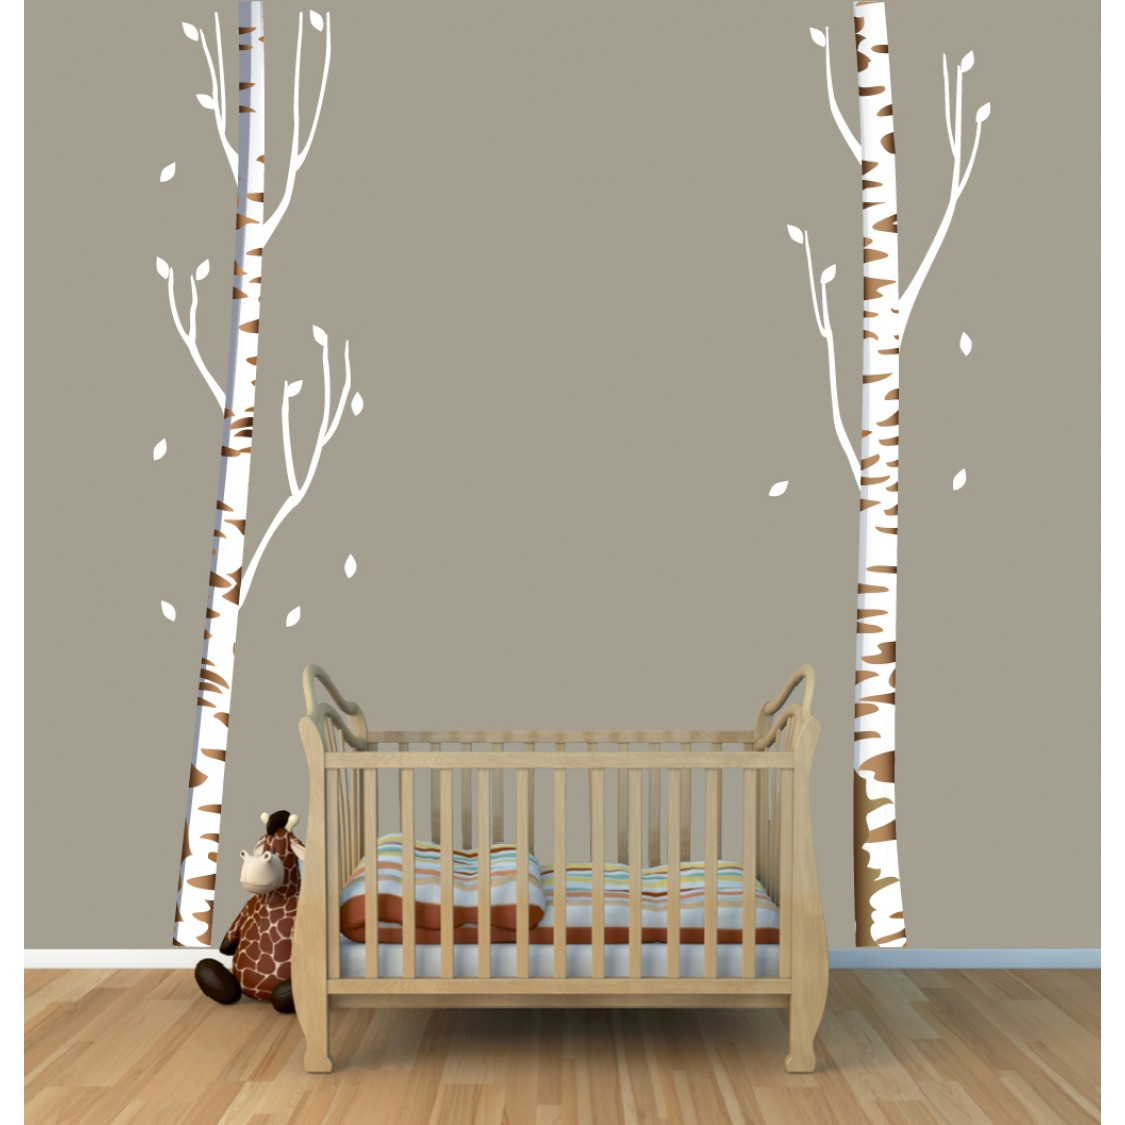 Birch Wall Decals and Tall Tree Wall Decals For Kids Rooms